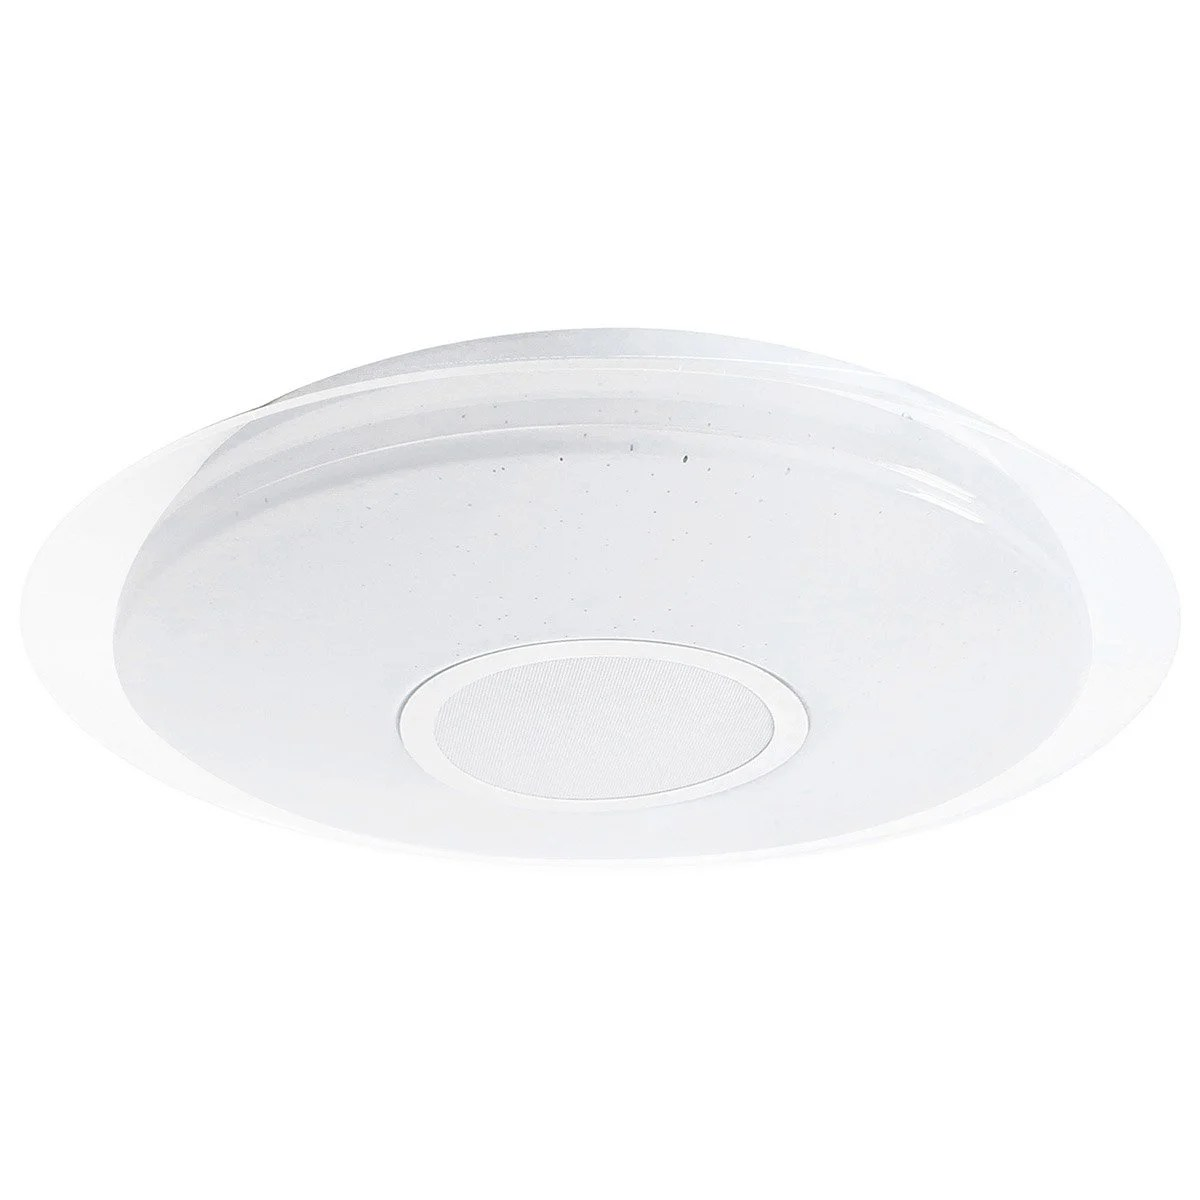 Plafonnier Led Vizzini Ceiling Built In Led Design Vizzini White 1 X 22 W Inspire